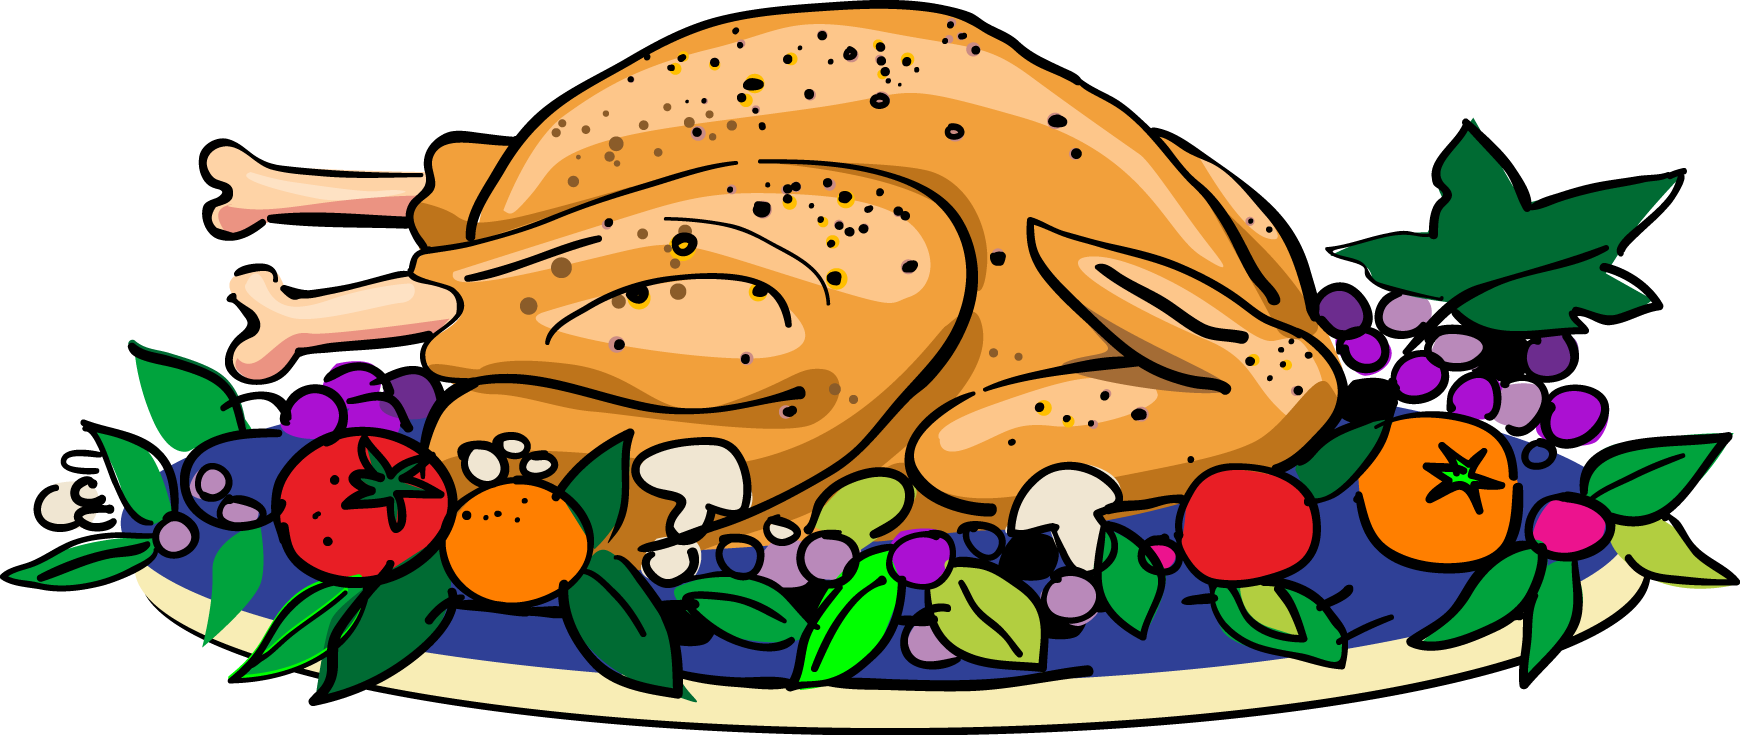 Thanksgiving Turkey Clip Art Cliparts Co-Thanksgiving Turkey Clip Art Cliparts Co-1